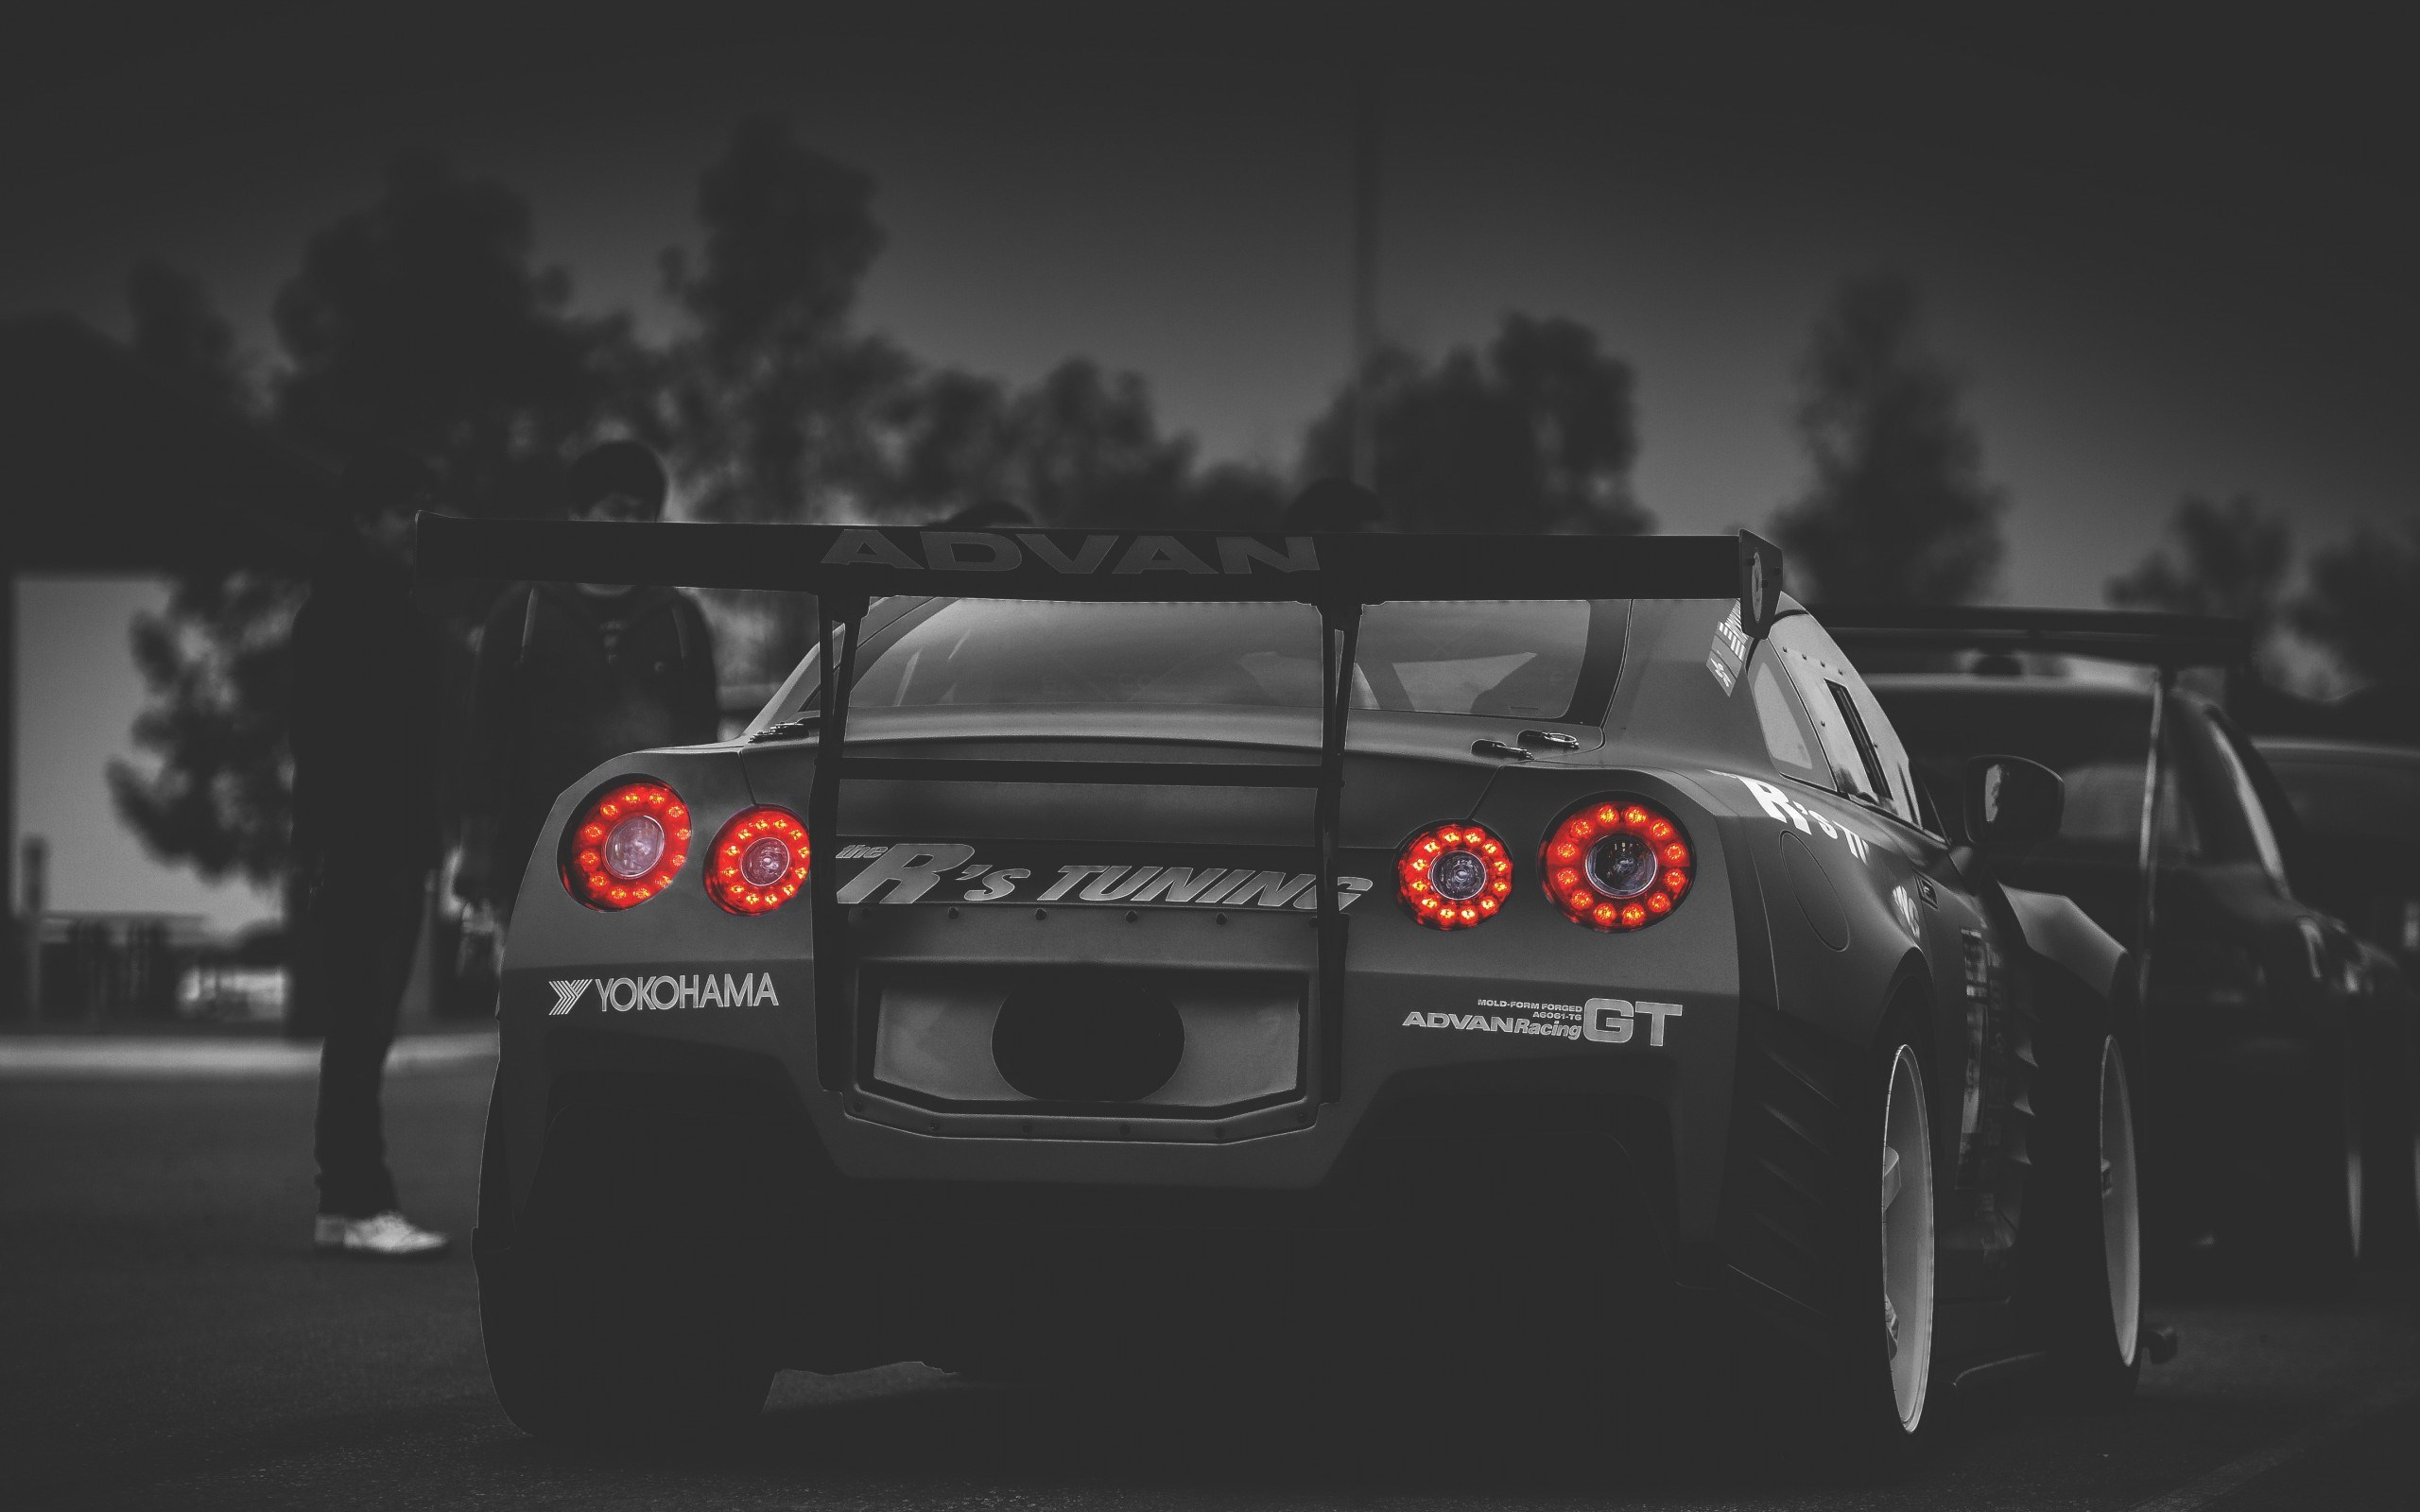 Nissan GT R Wallpapers and Background Images   stmednet 2560x1600